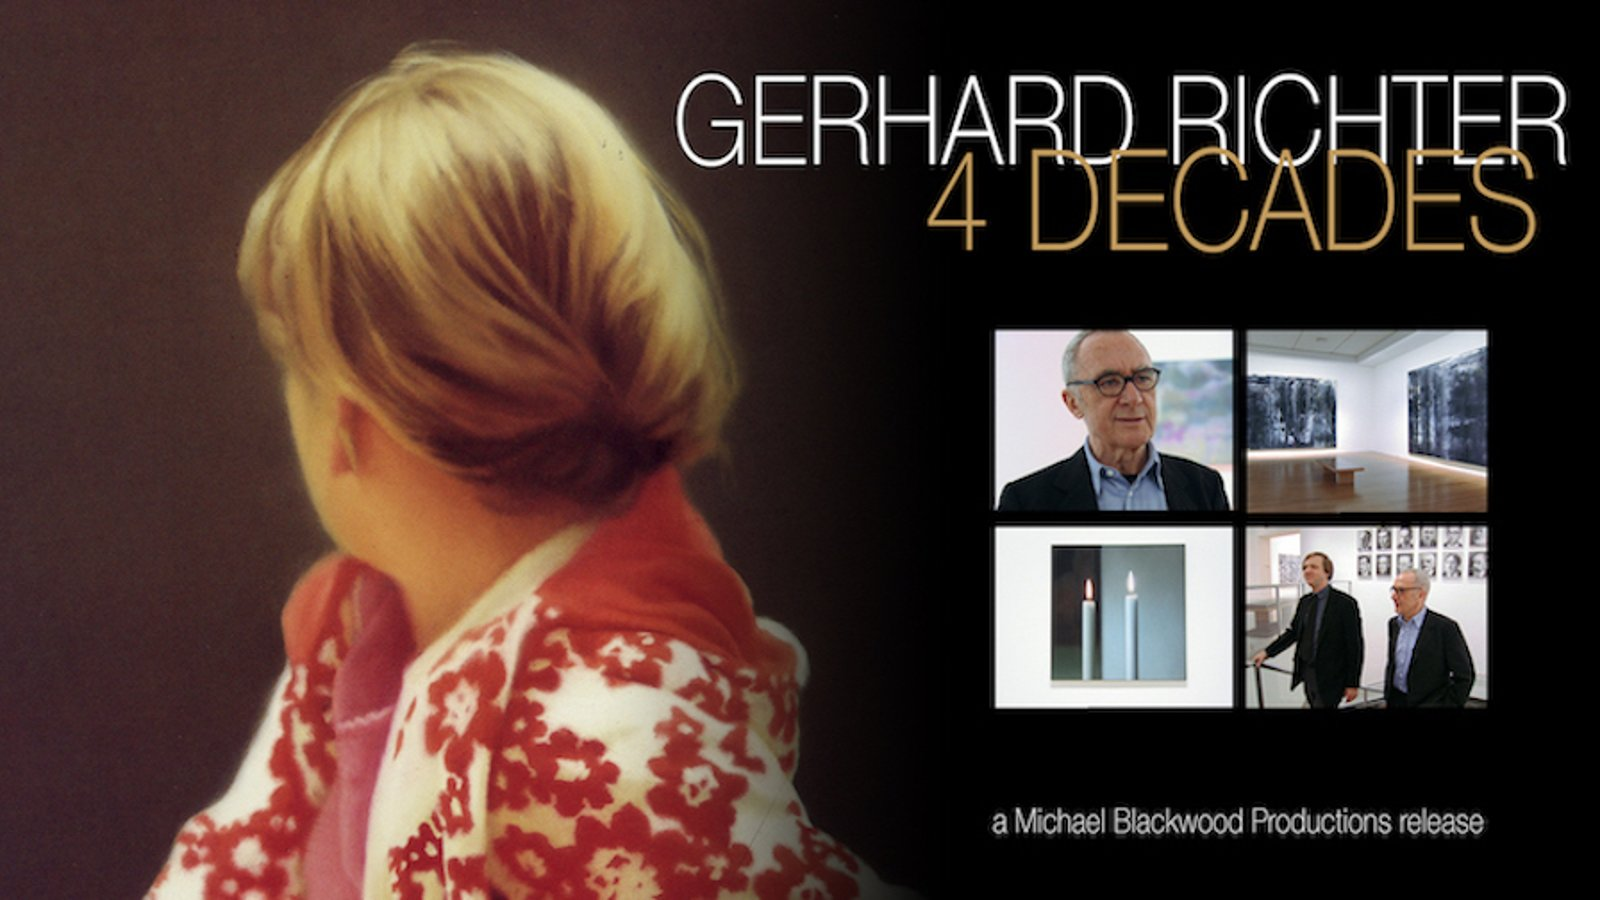 Gerhard Richter: 4 Decades - The Famous Painter's Early Work